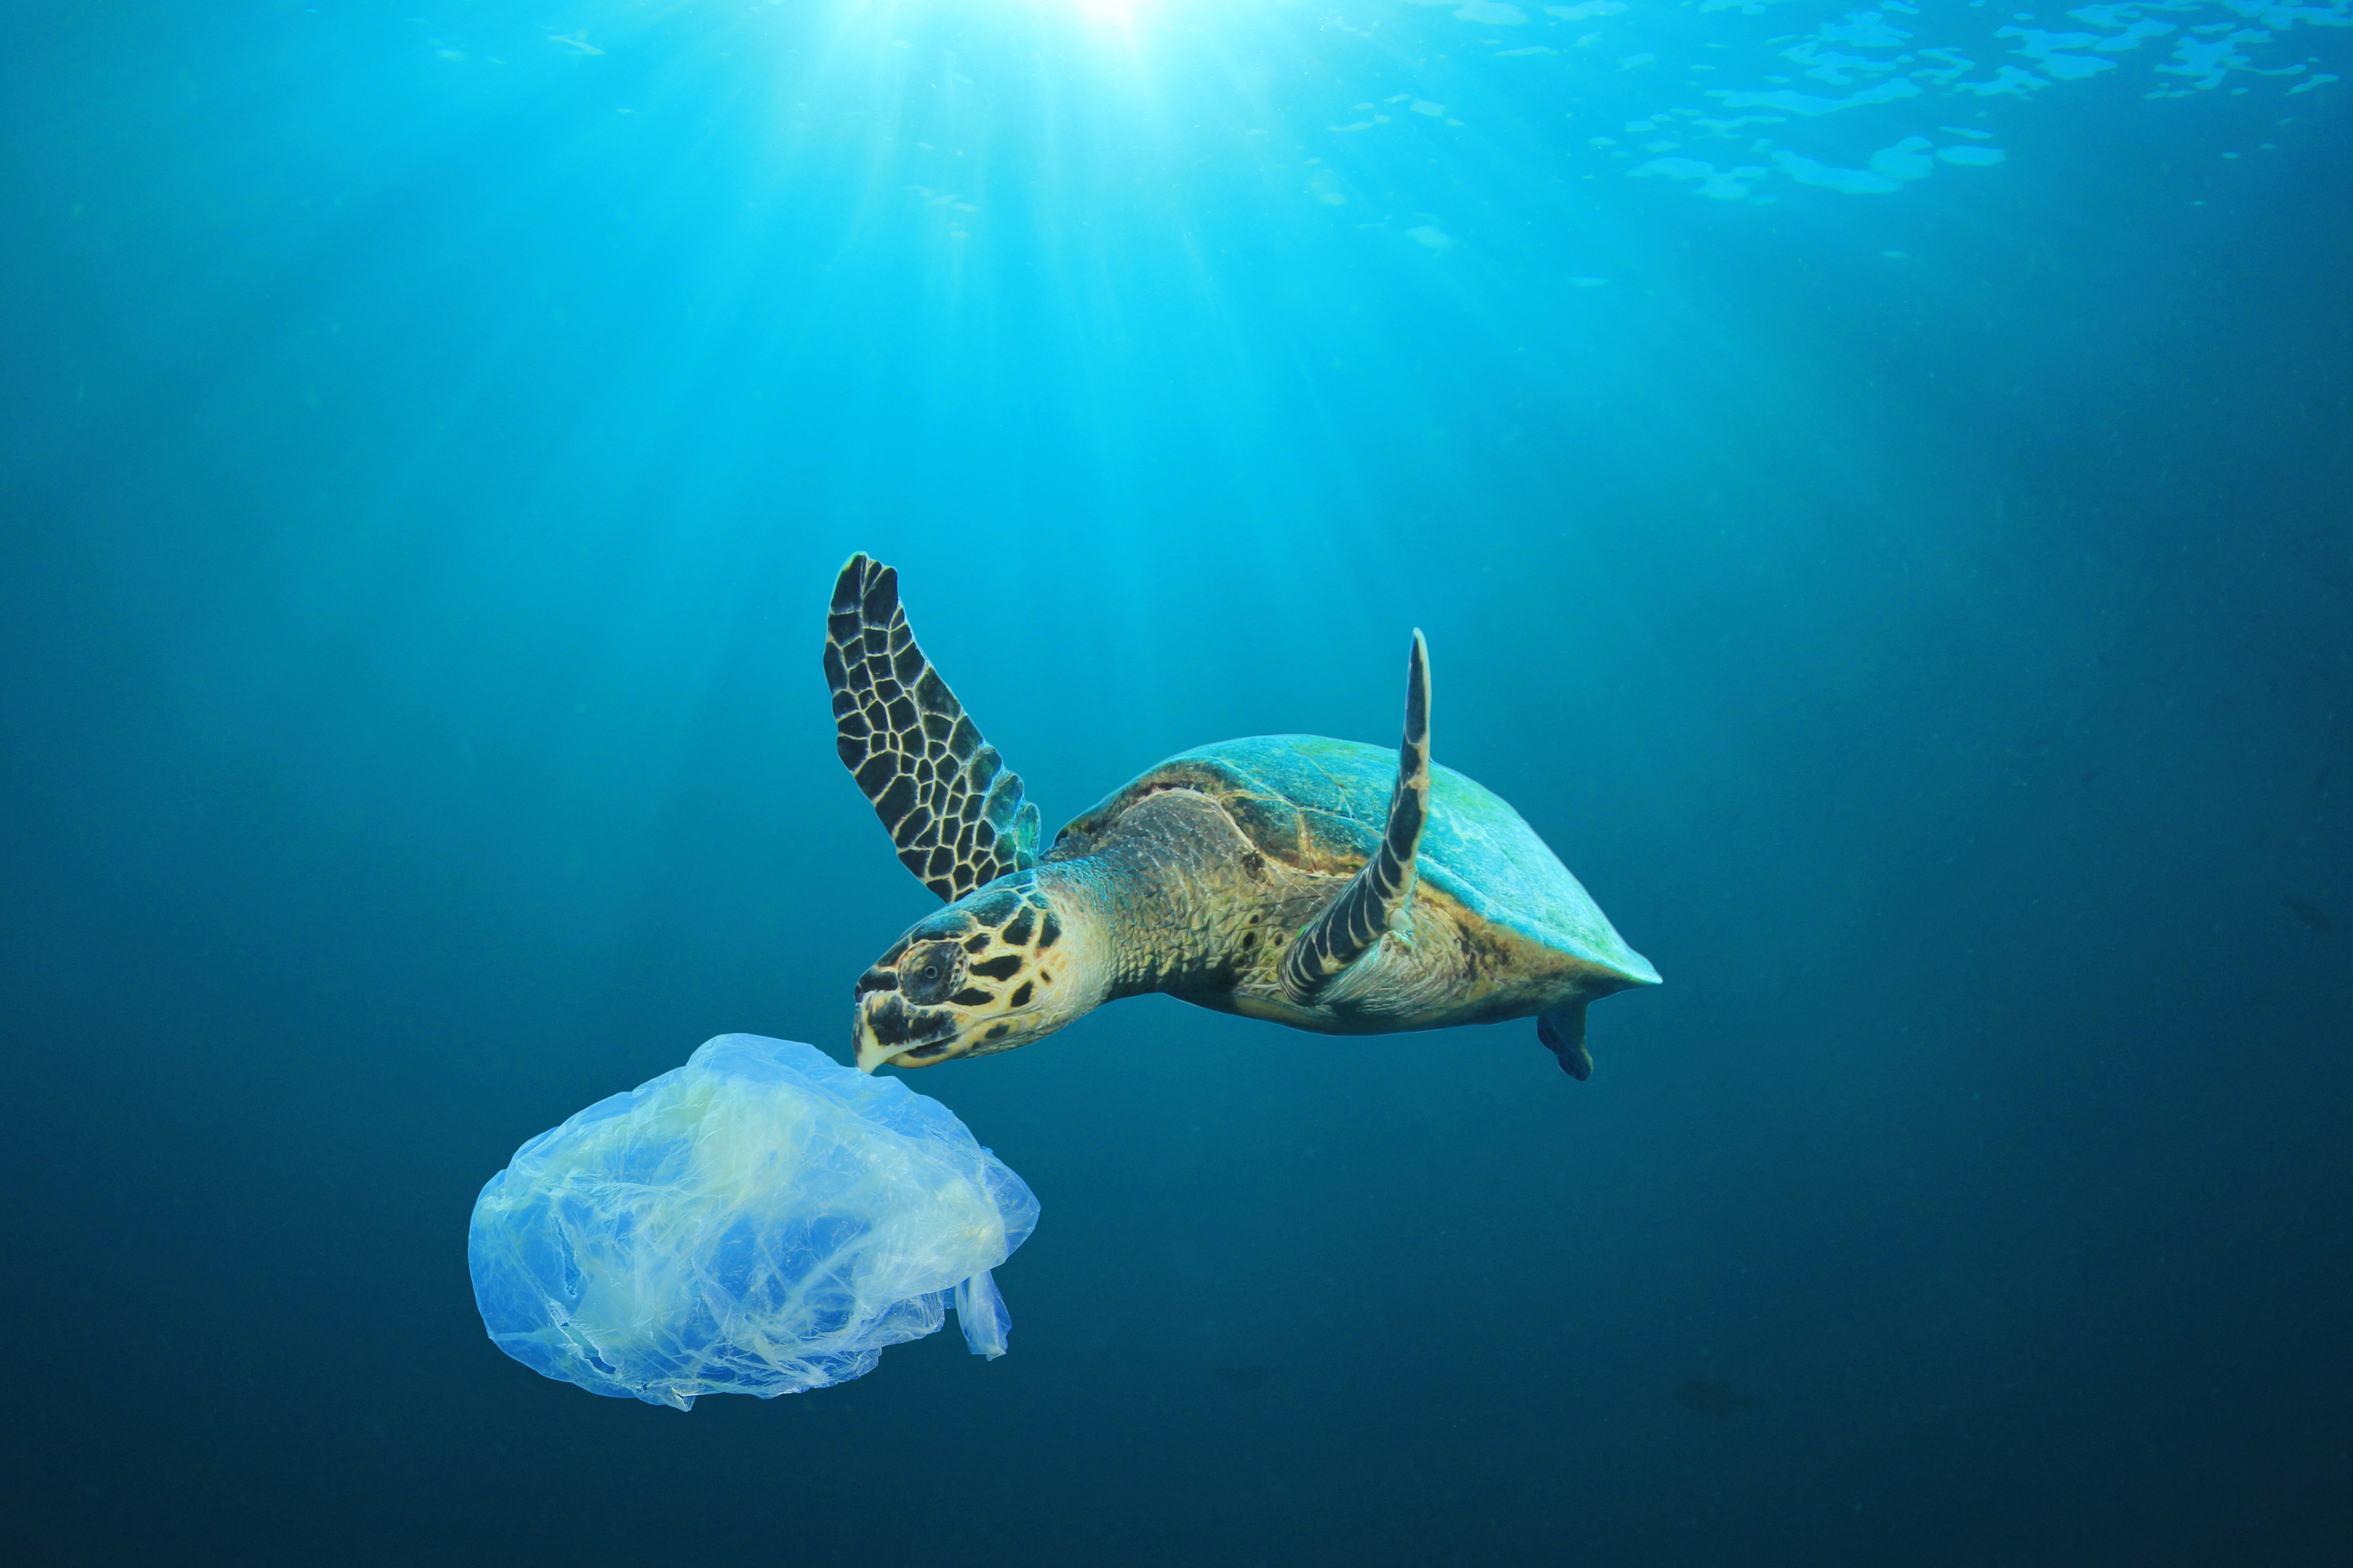 Sea turtle trying to eat a plastic bag